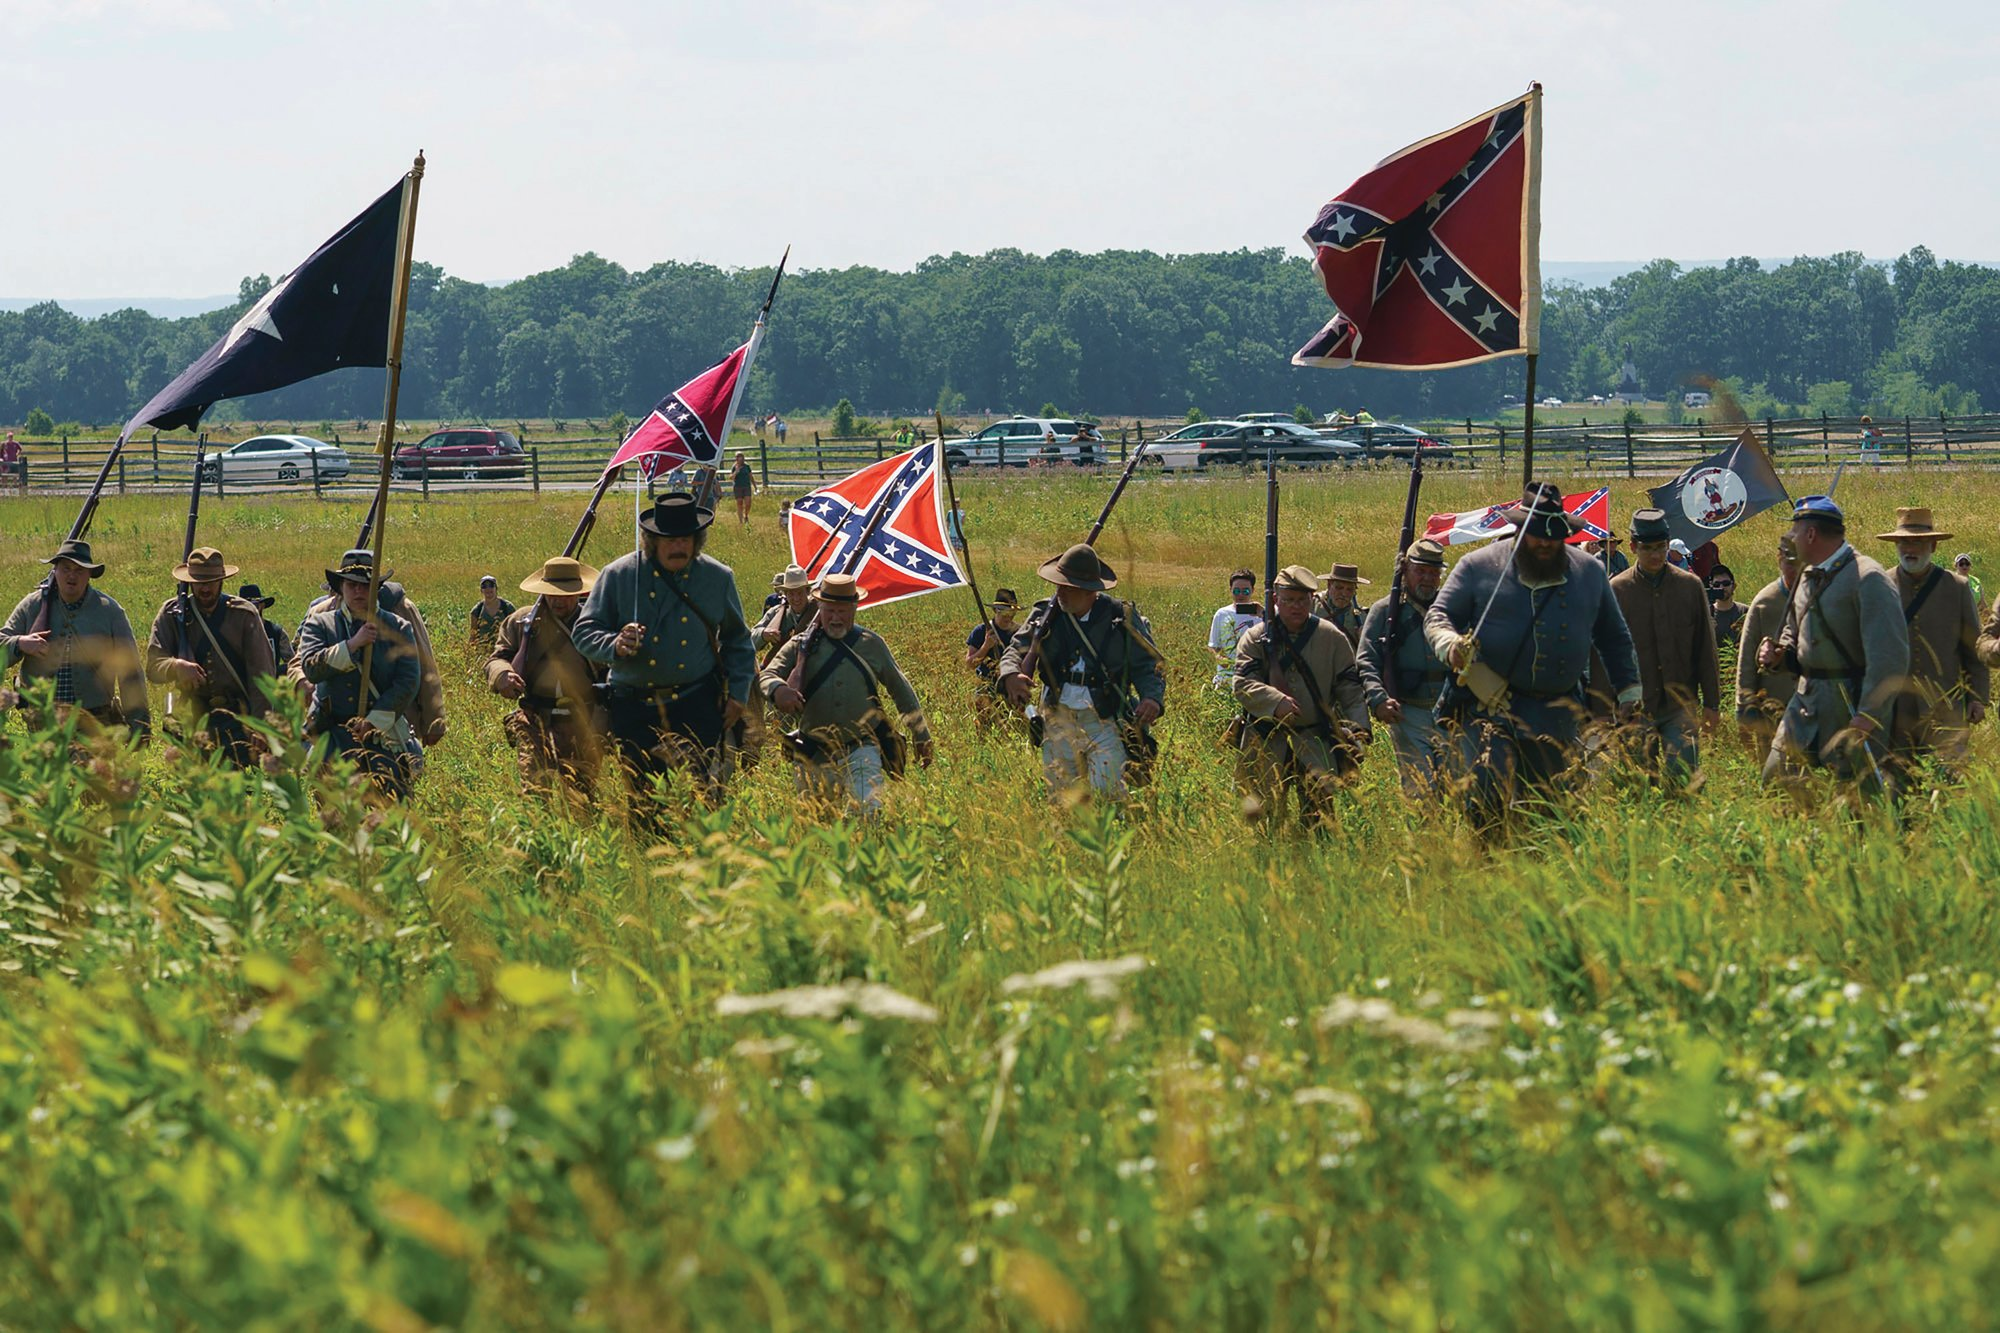 Civil War reenactors march with Confederate battle flags in a recent reenactment of Pickett's Charge at Gettysburg National Military Park in Gettysburg, Pennsylvania. The banner, with its red field and blue X design, is the best known of the flags of the Confederacy, but the short-lived rebel nation also had other flags.